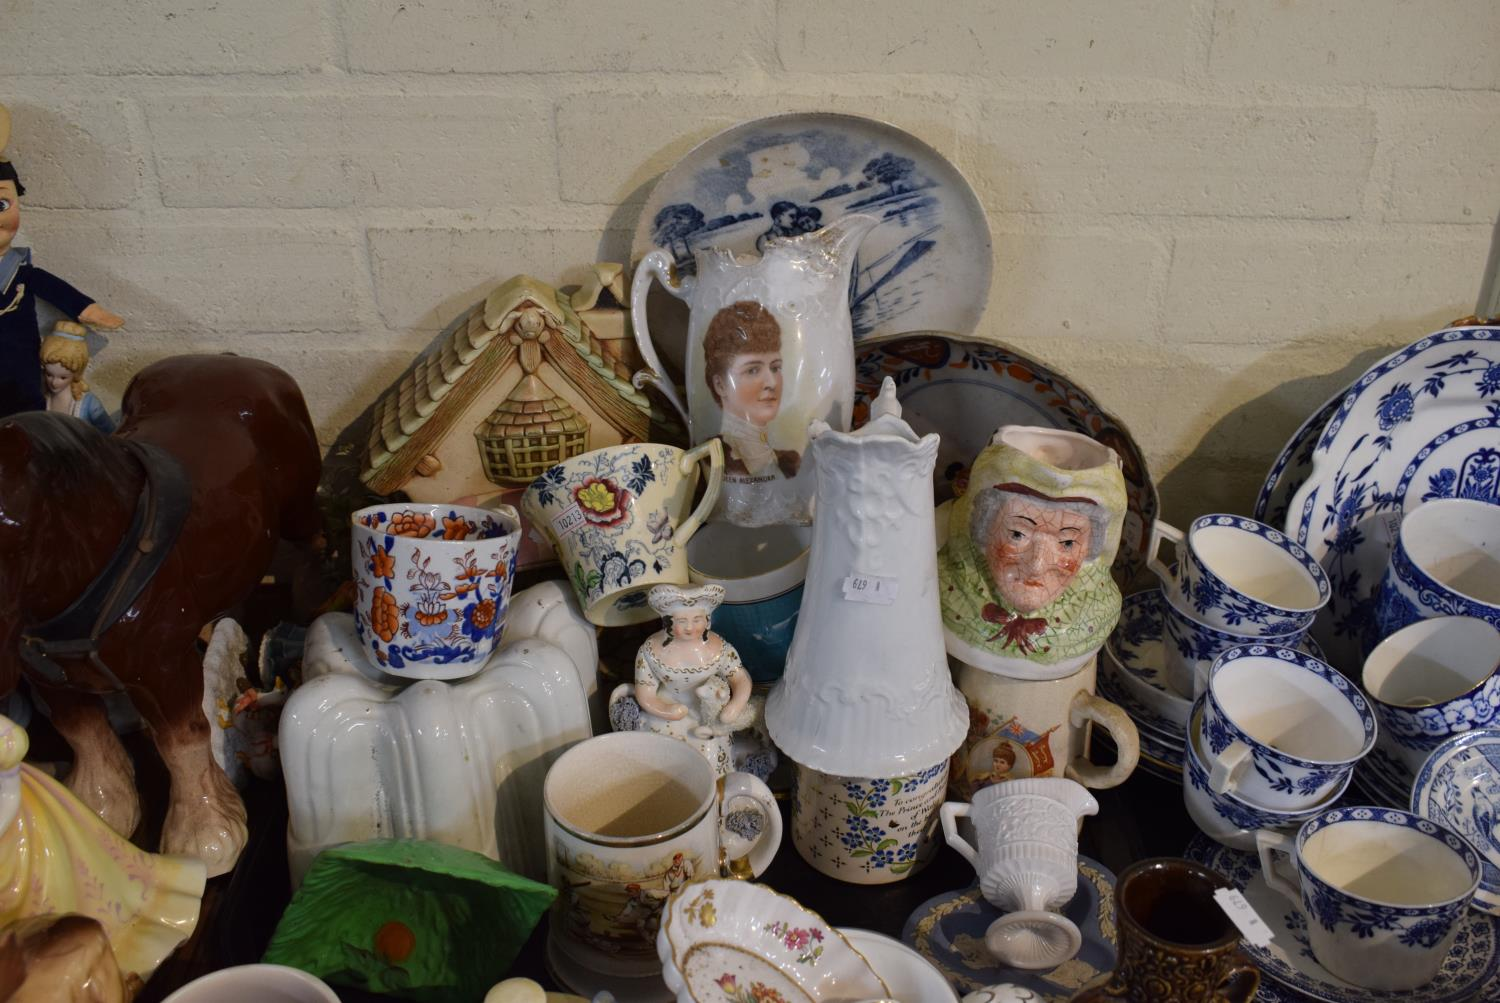 Lot 199 - A Tray of 19th Century and Later Staffordshire Ceramics to Include Jugs, Jelly Mould, Tankards,